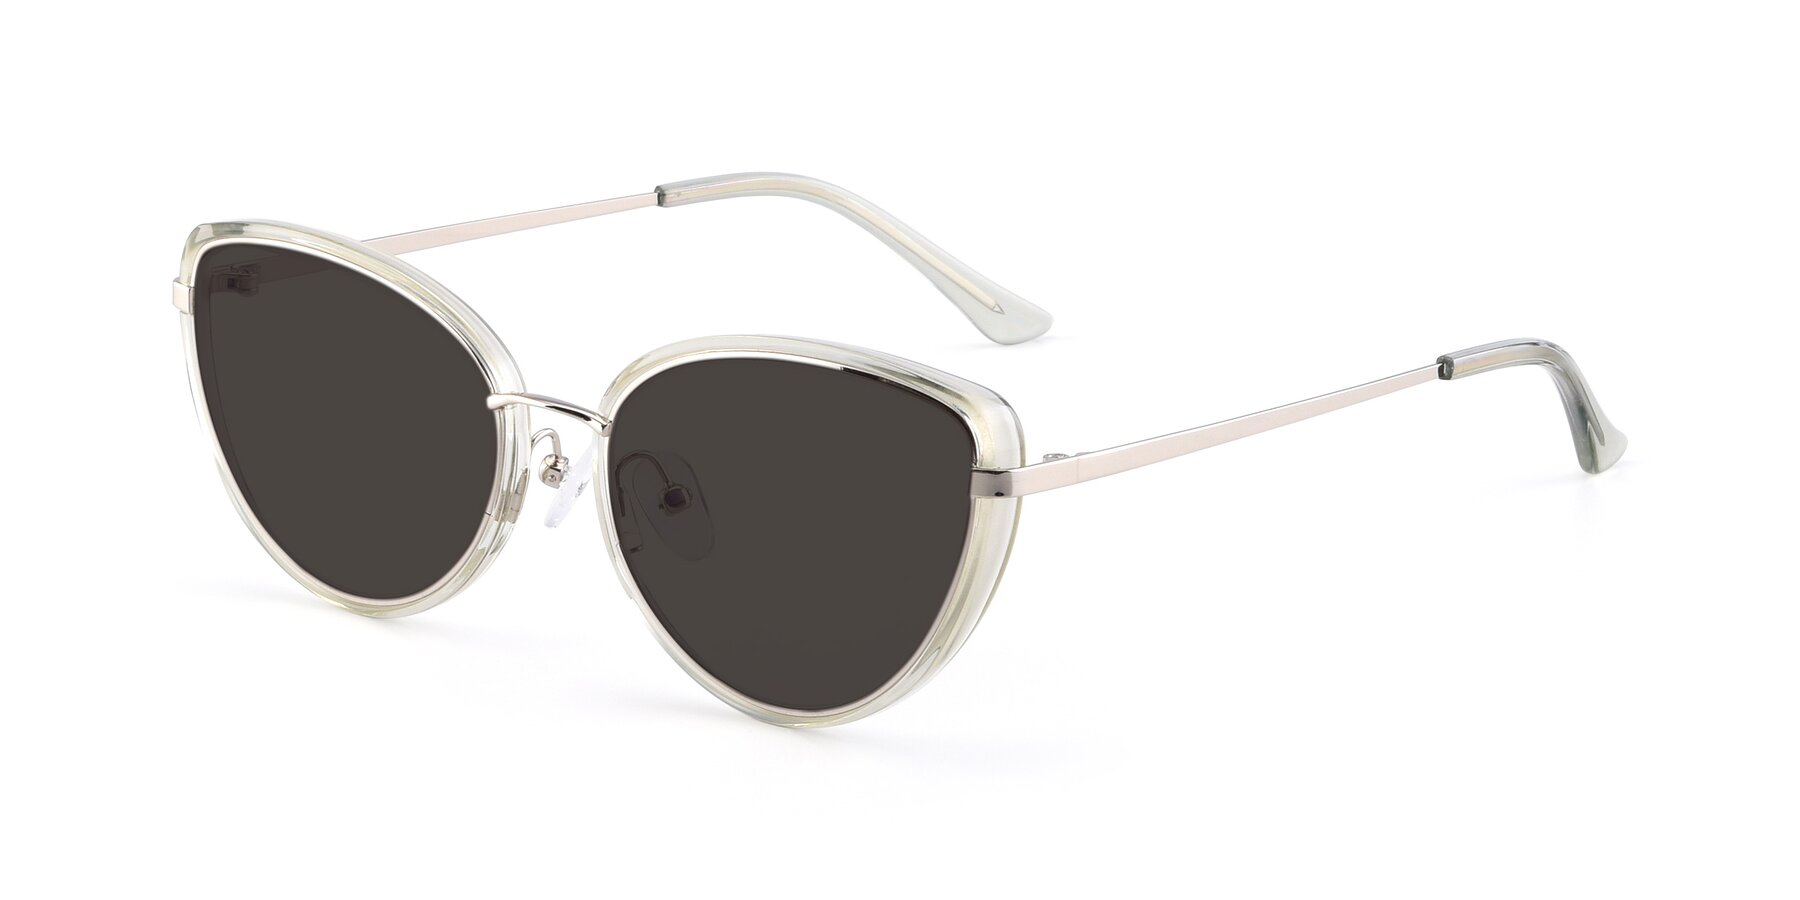 Angle of 17706 in Transparent Green-Silver with Gray Tinted Lenses